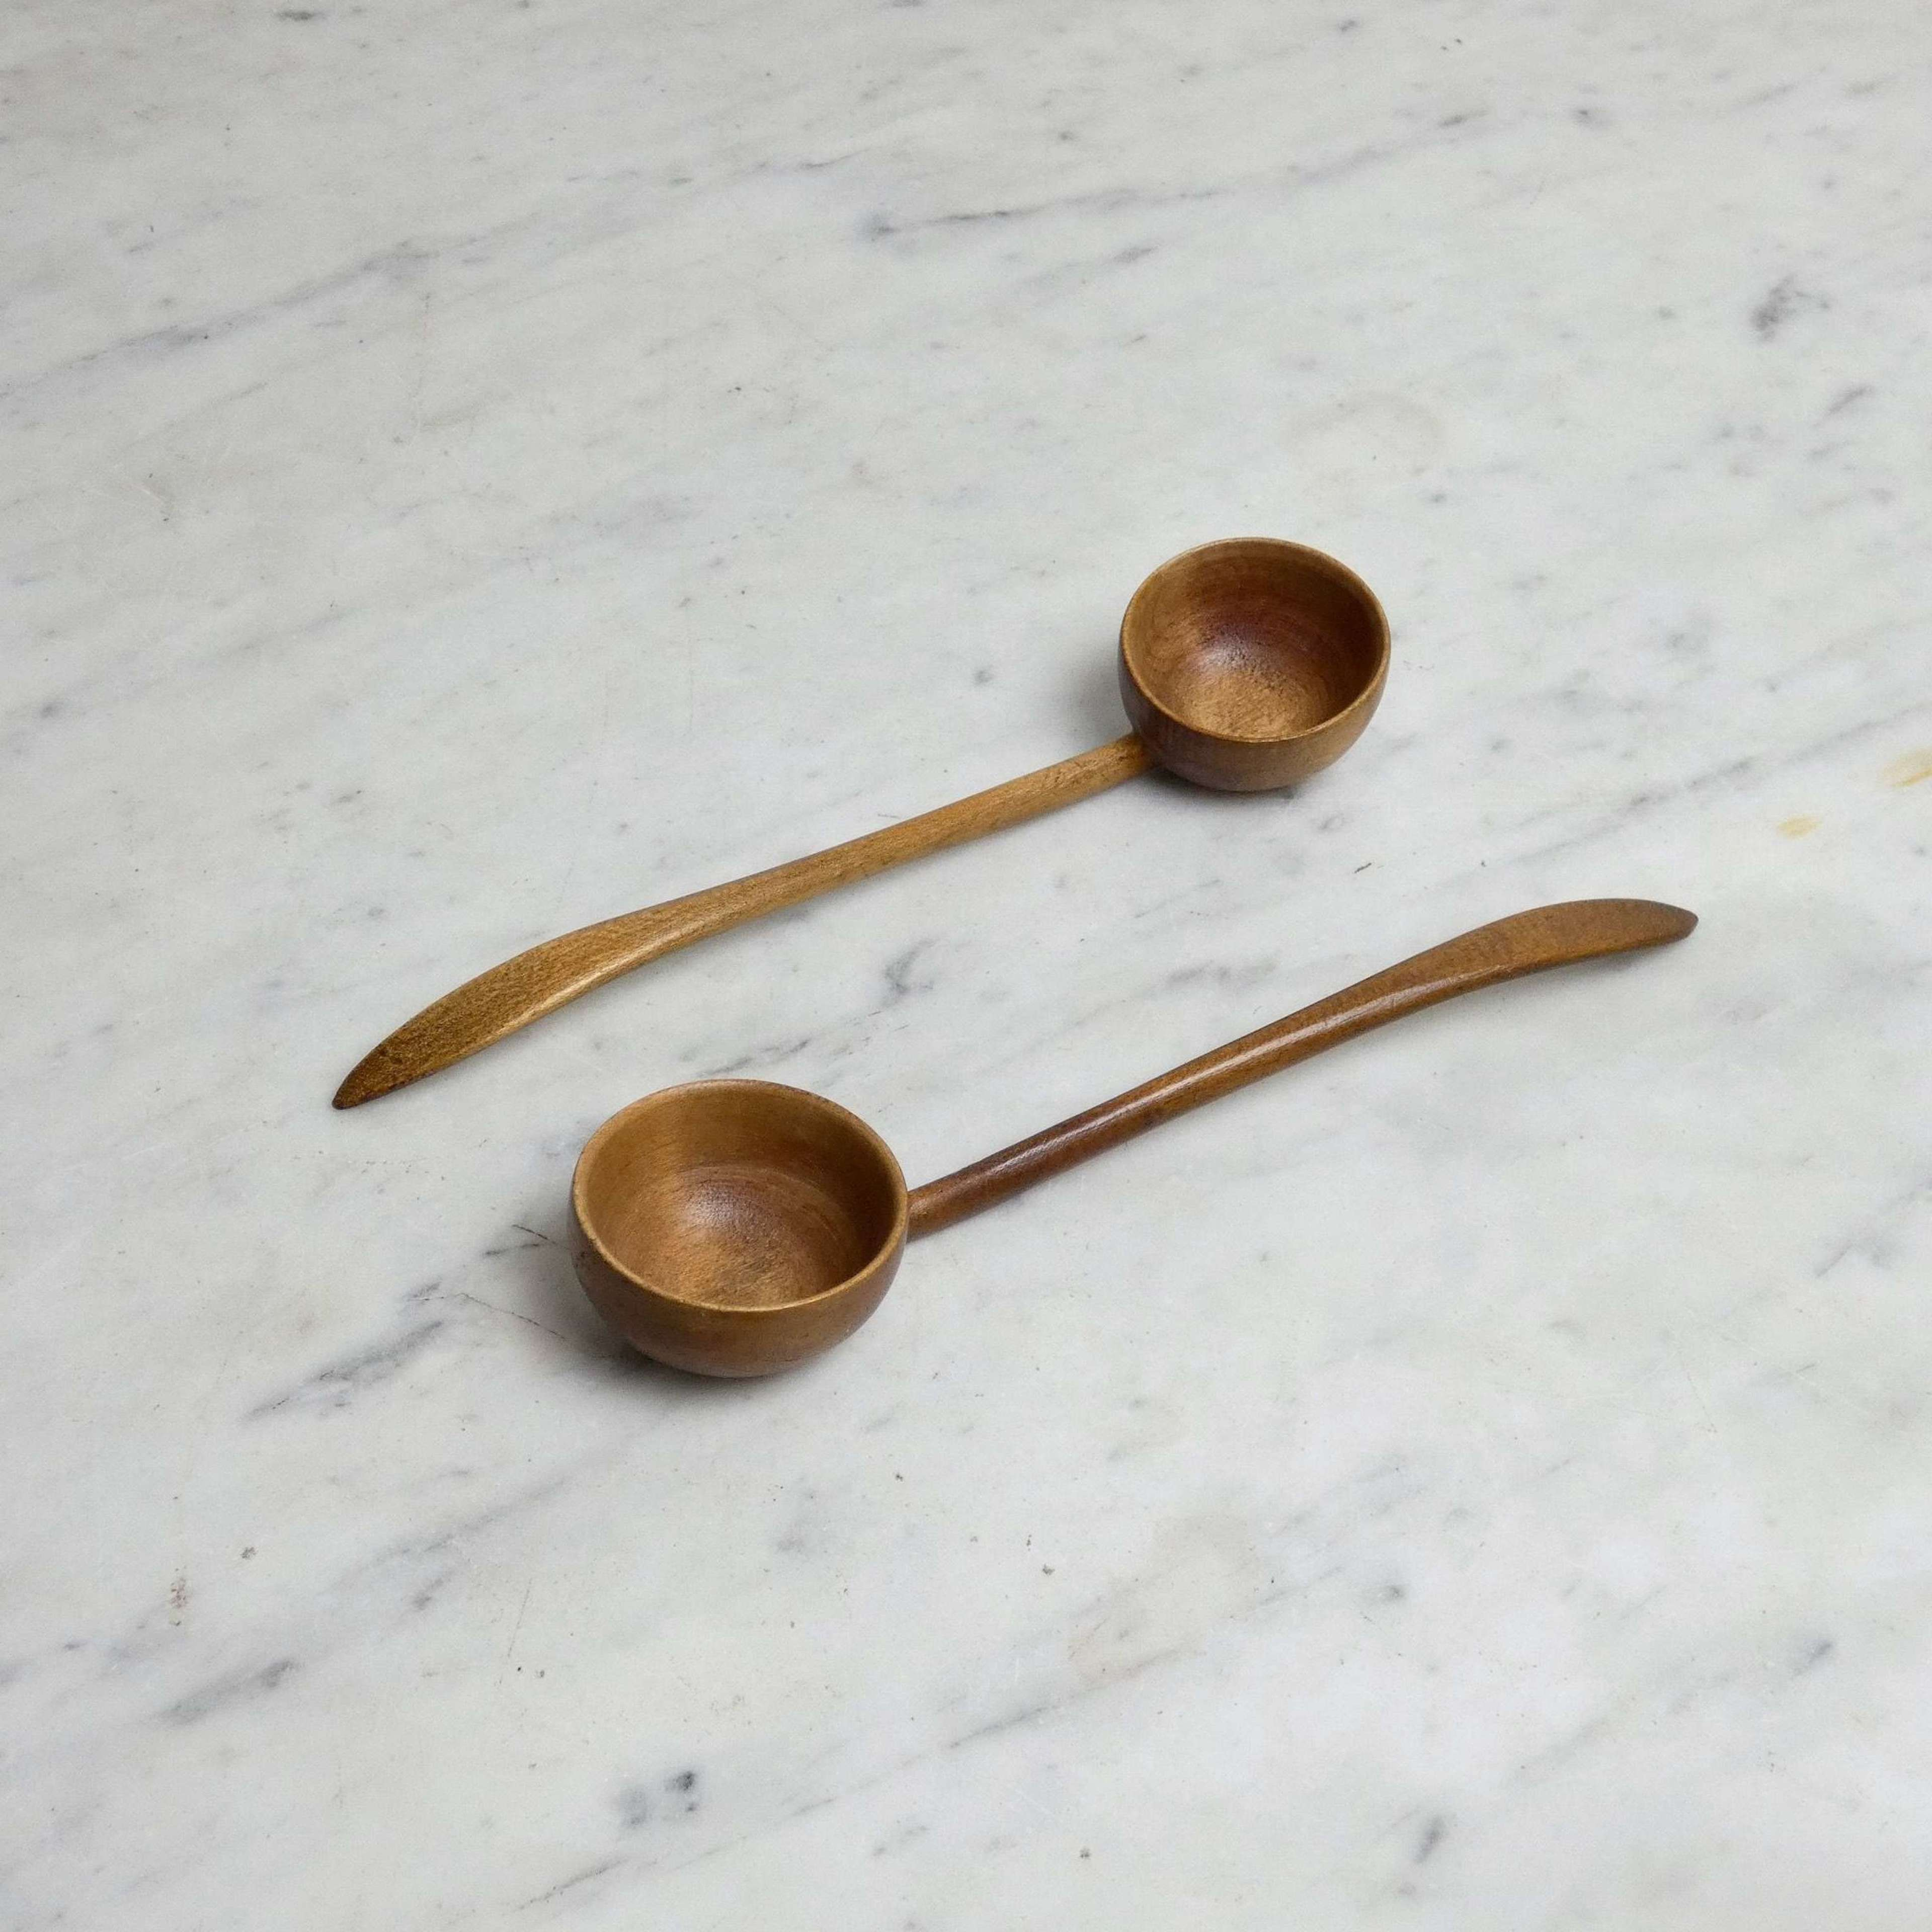 Two 19th century, wooden toddy ladles